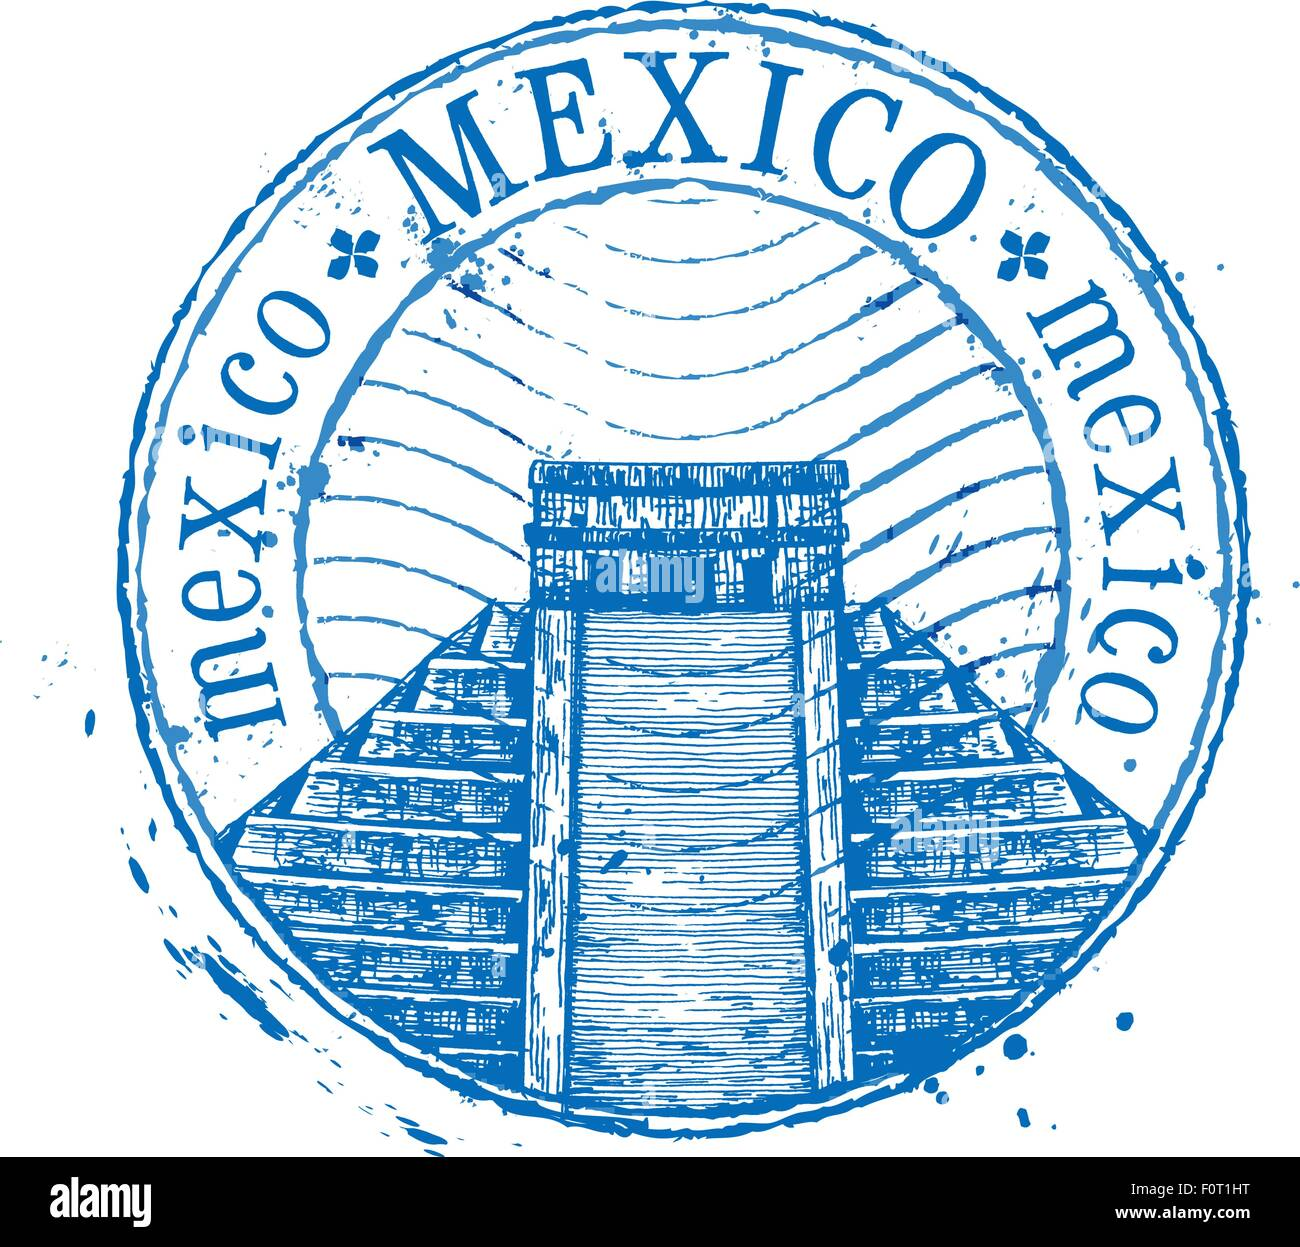 Mexico Stamp Stock Vector Images